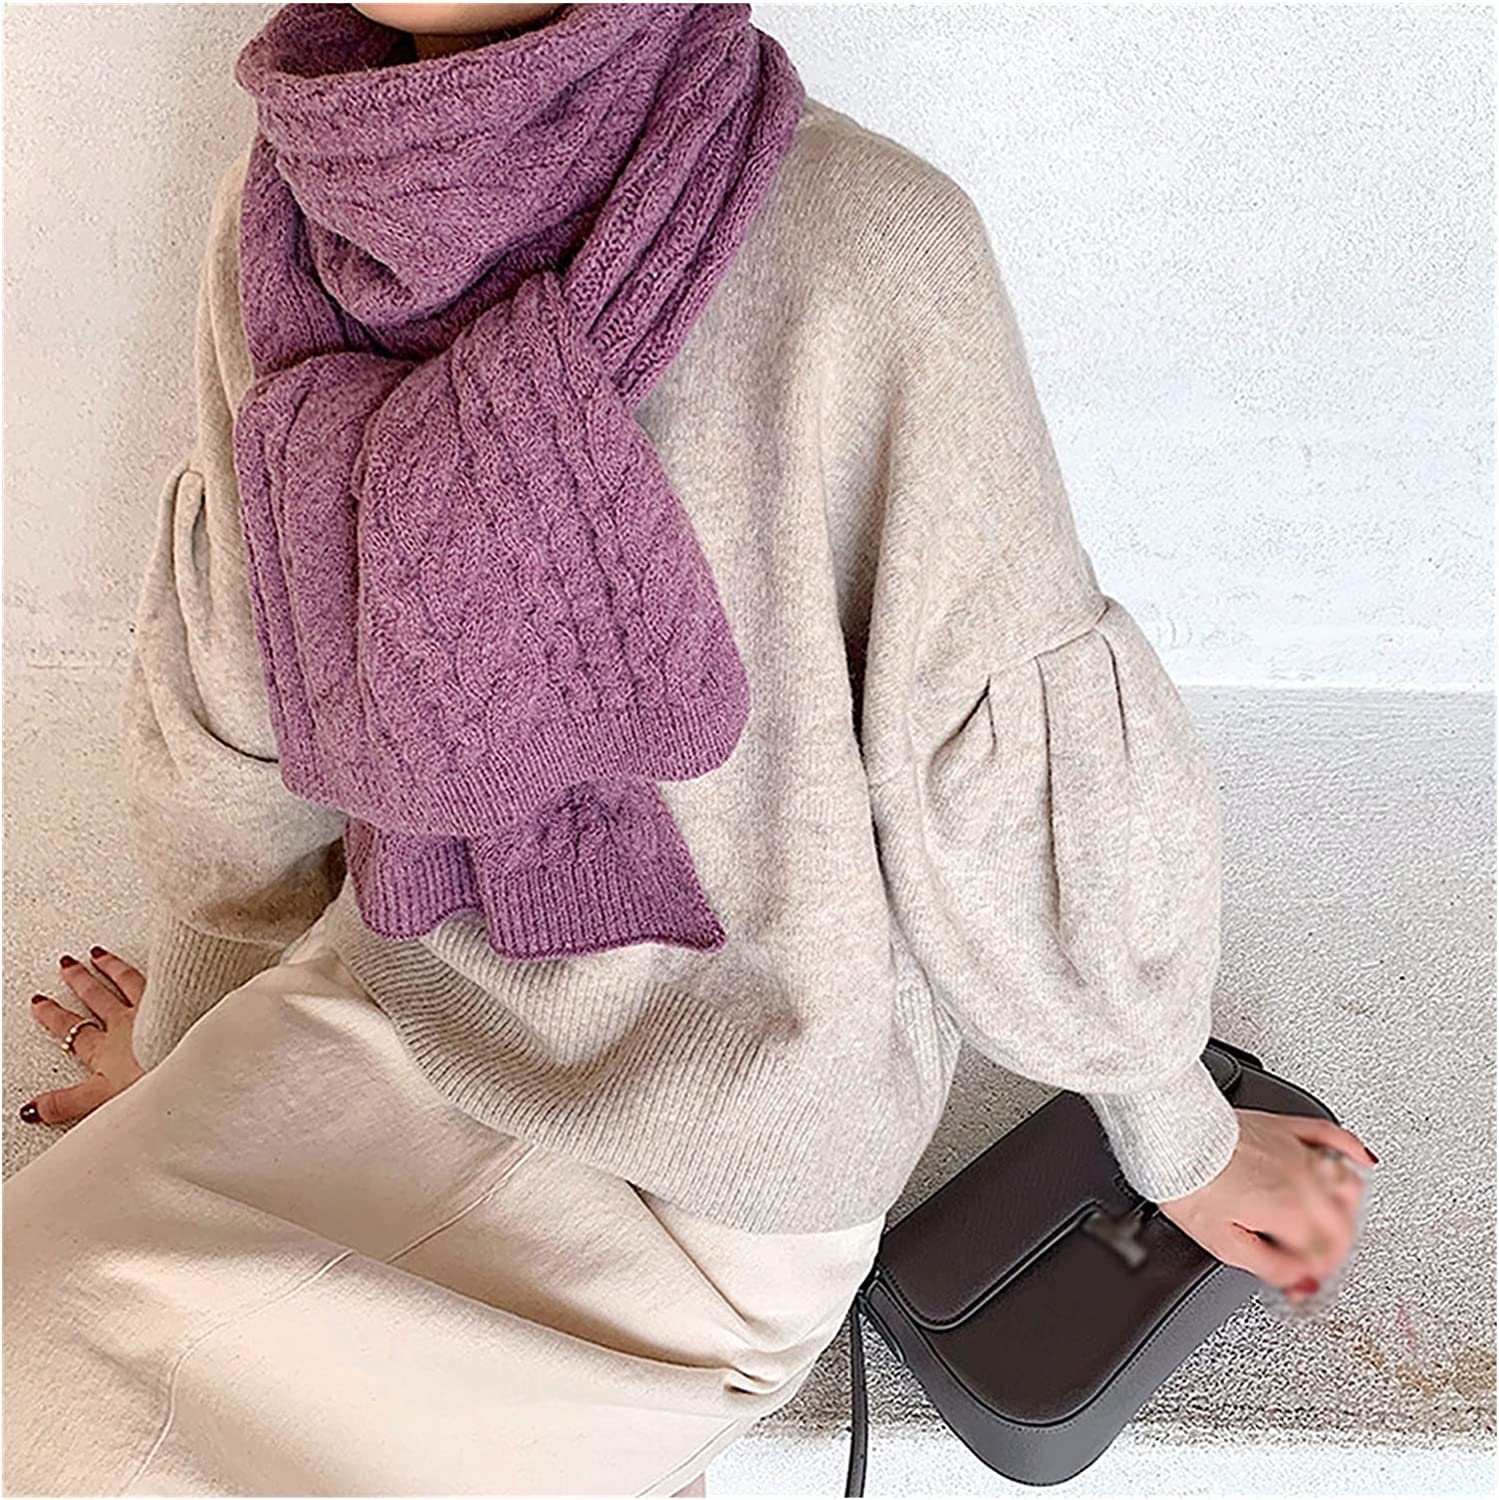 GYZCZX Female Autumn Winter Solid Womenknit Selling Jacksonville Mall Scarf War Wool Color